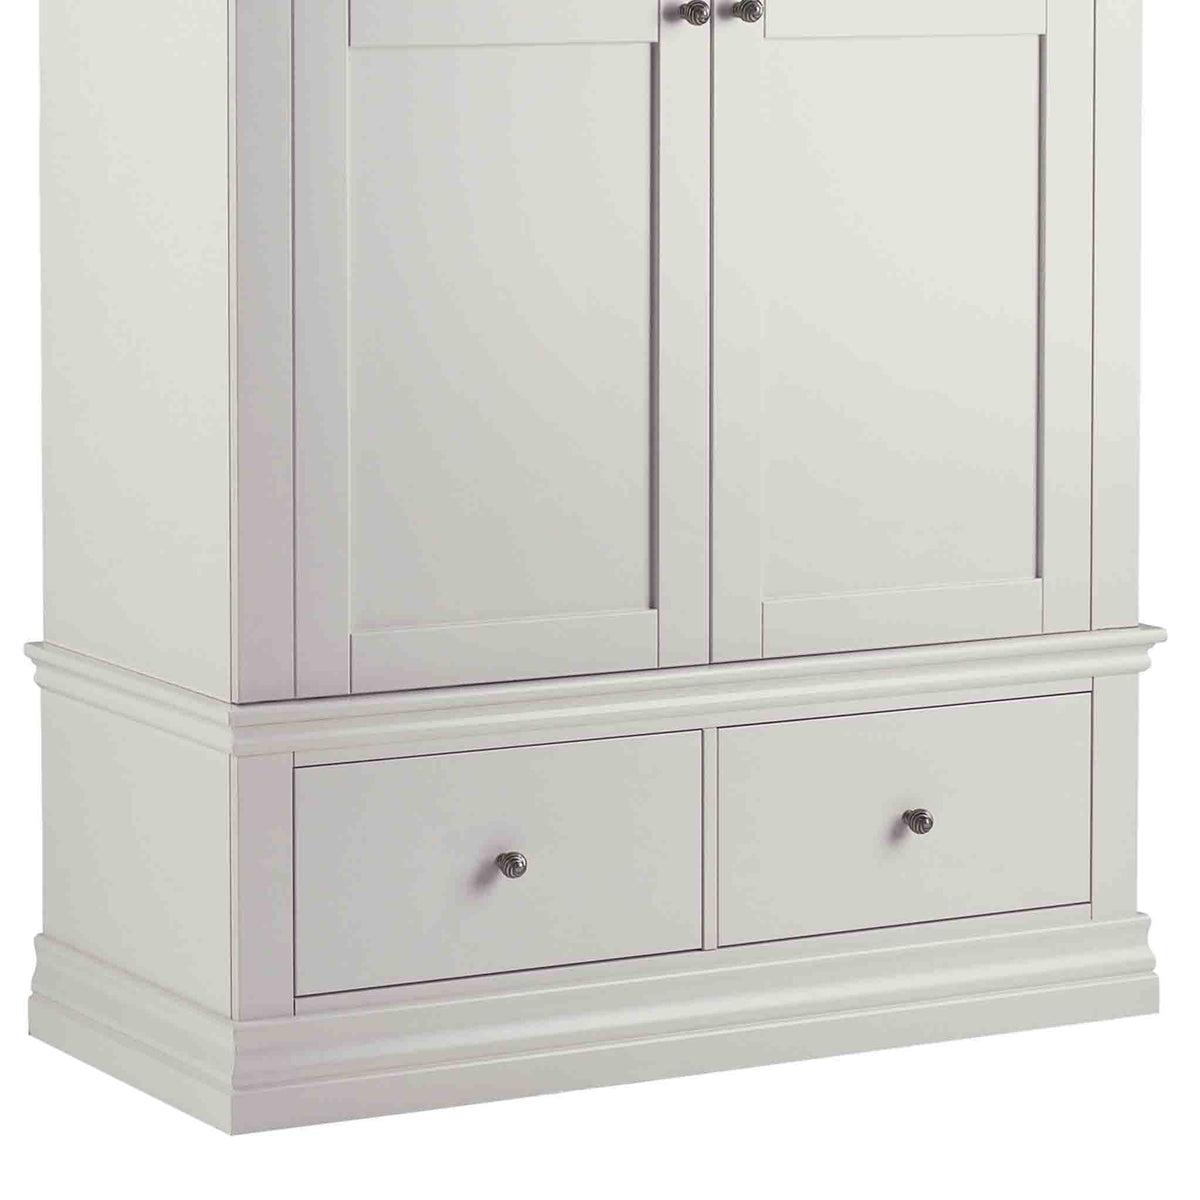 close up of drawers on the Melrose Cotton White Double Wardrobe